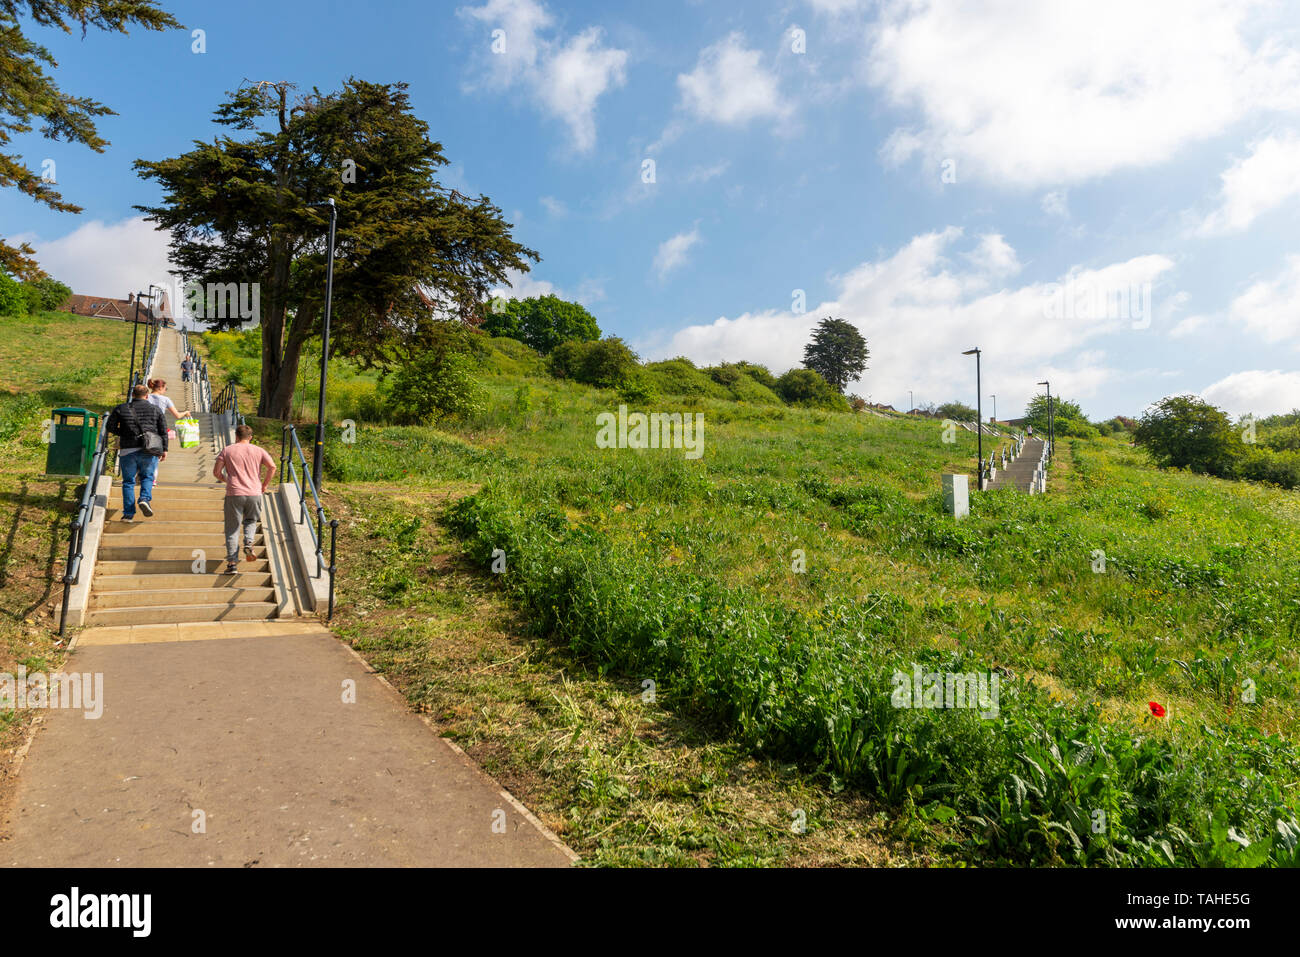 herschell-steps-gardens-and-belton-hills-nature-reserve-leigh-on-sea-essex-uk-above-the-thames-estuary-cliff-top-town-in-southend-borough-TAHE5G.jpg